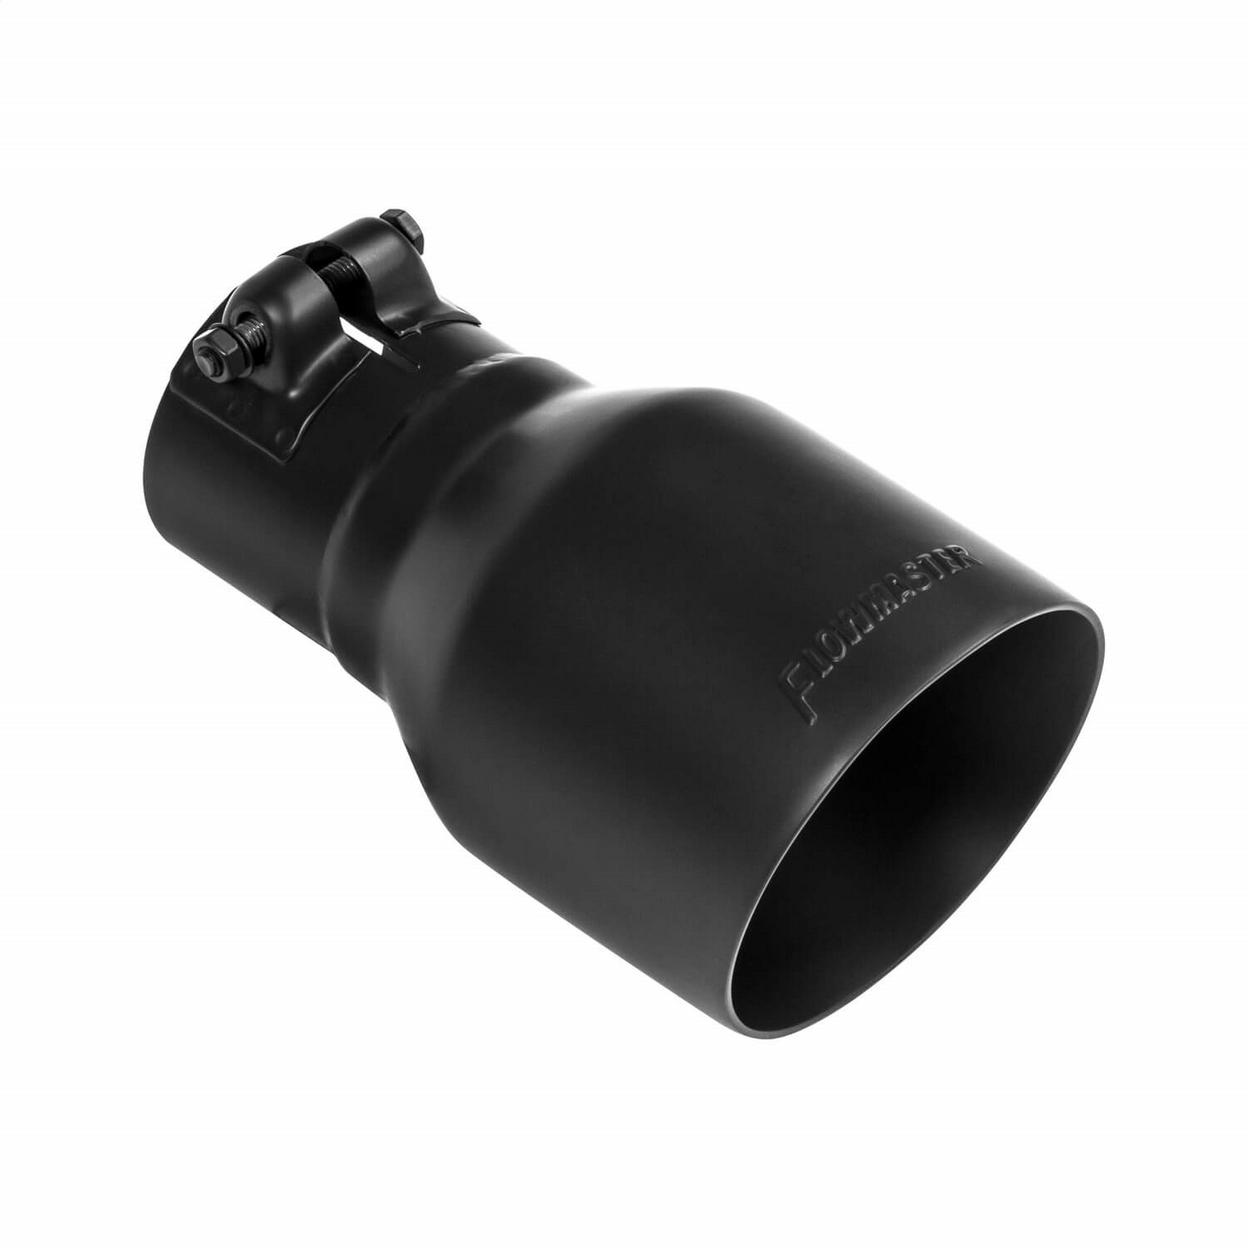 Exhaust Tip - 4.00 in. Black Ceramic Coated - Fits 2.5 in. Tubing- Clamp On